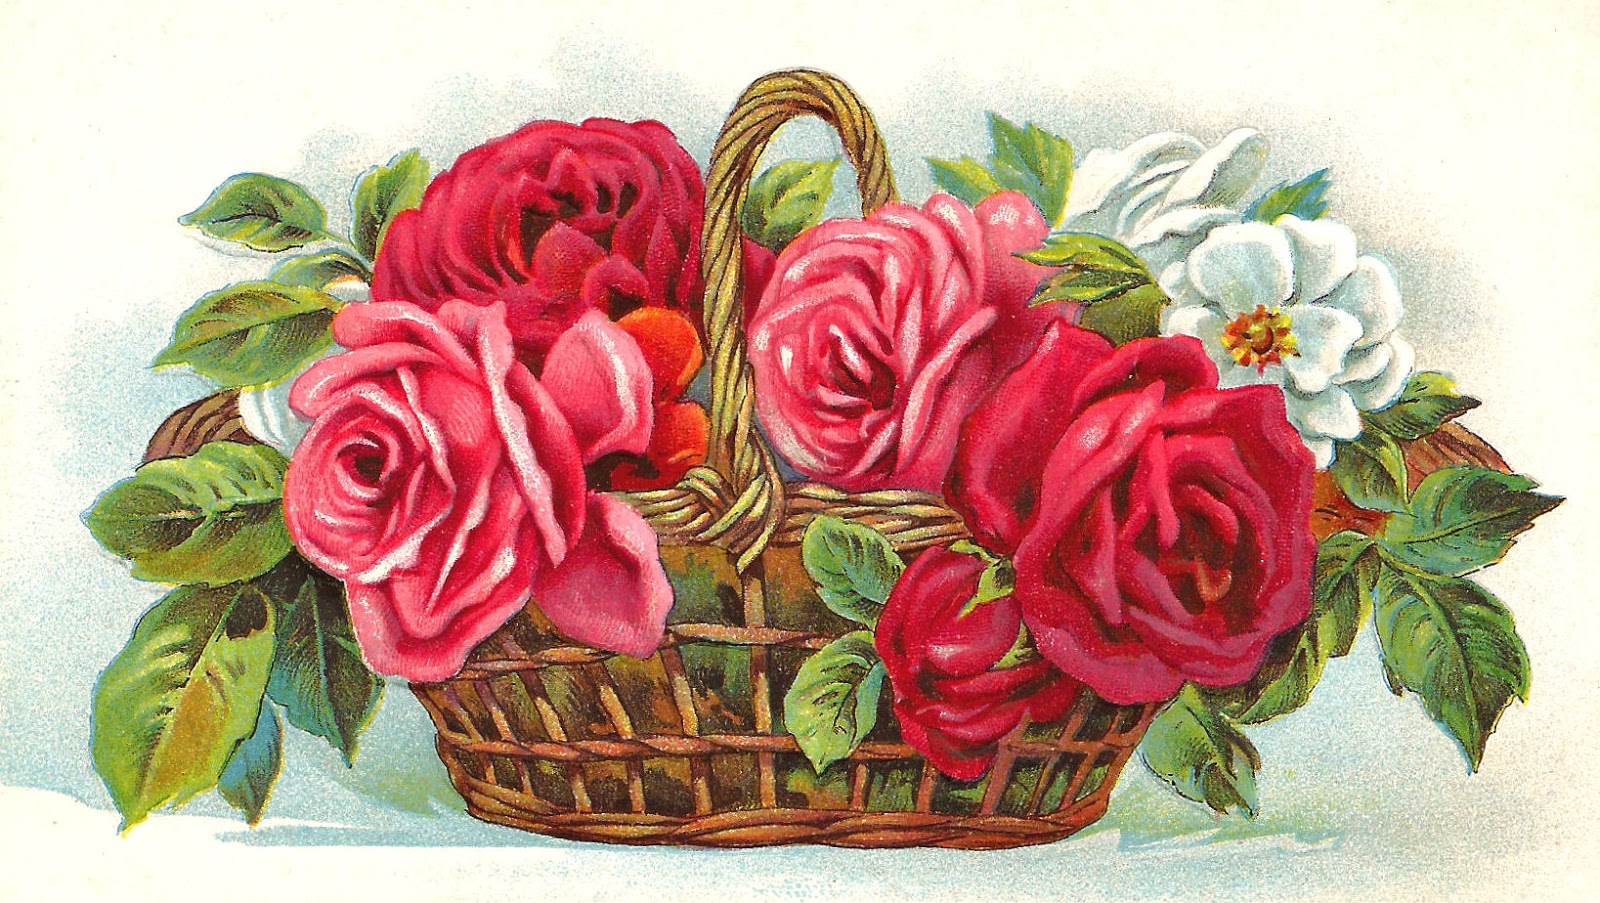 free clipart roses flowers - photo #41